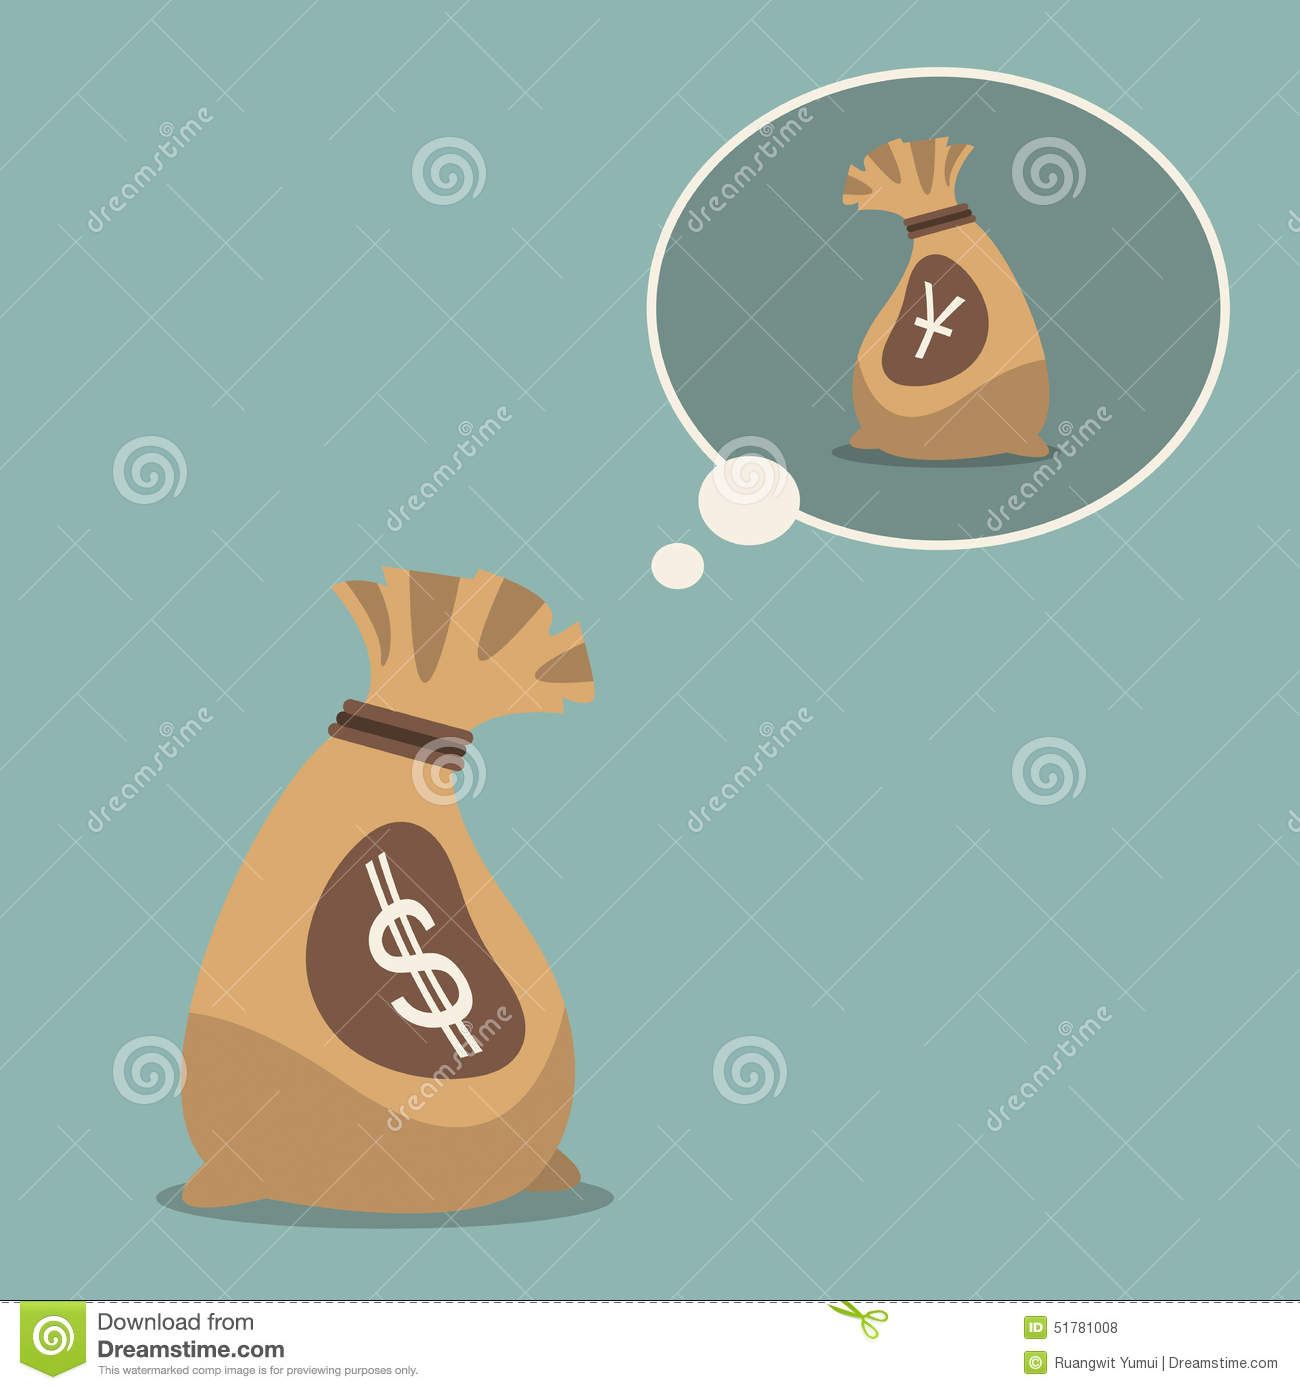 Us dollar dream to chinese yuan currency symbol in flat design us dollar dream to chinese yuan currency symbol in flat design biocorpaavc